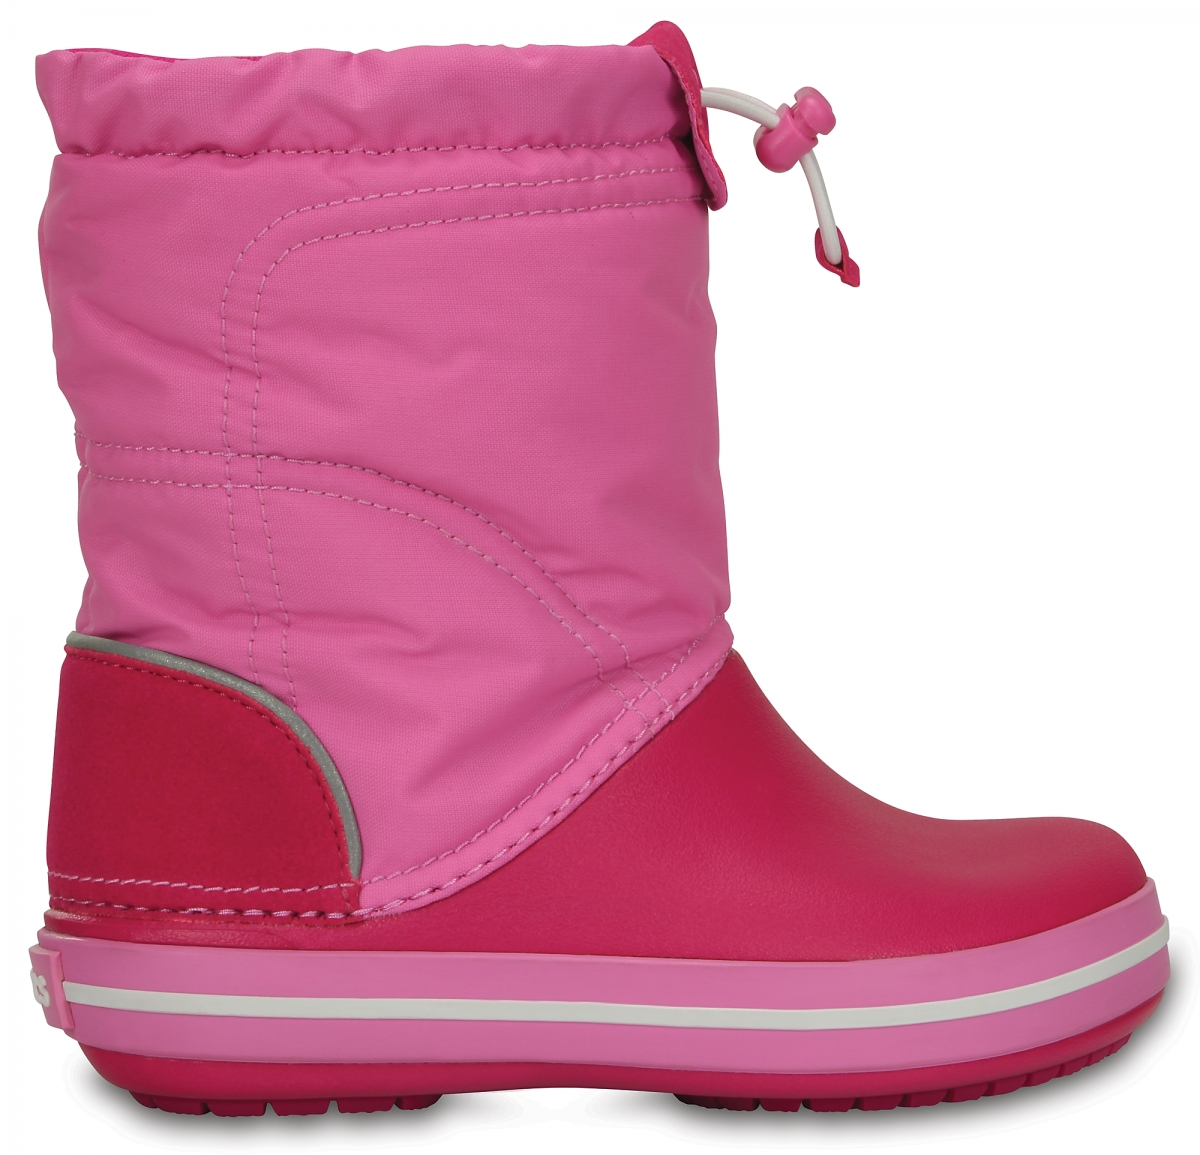 Crocs Crocband LodgePoint Boot Kids - Candy Pink/Party Pink, J2 (33-34)